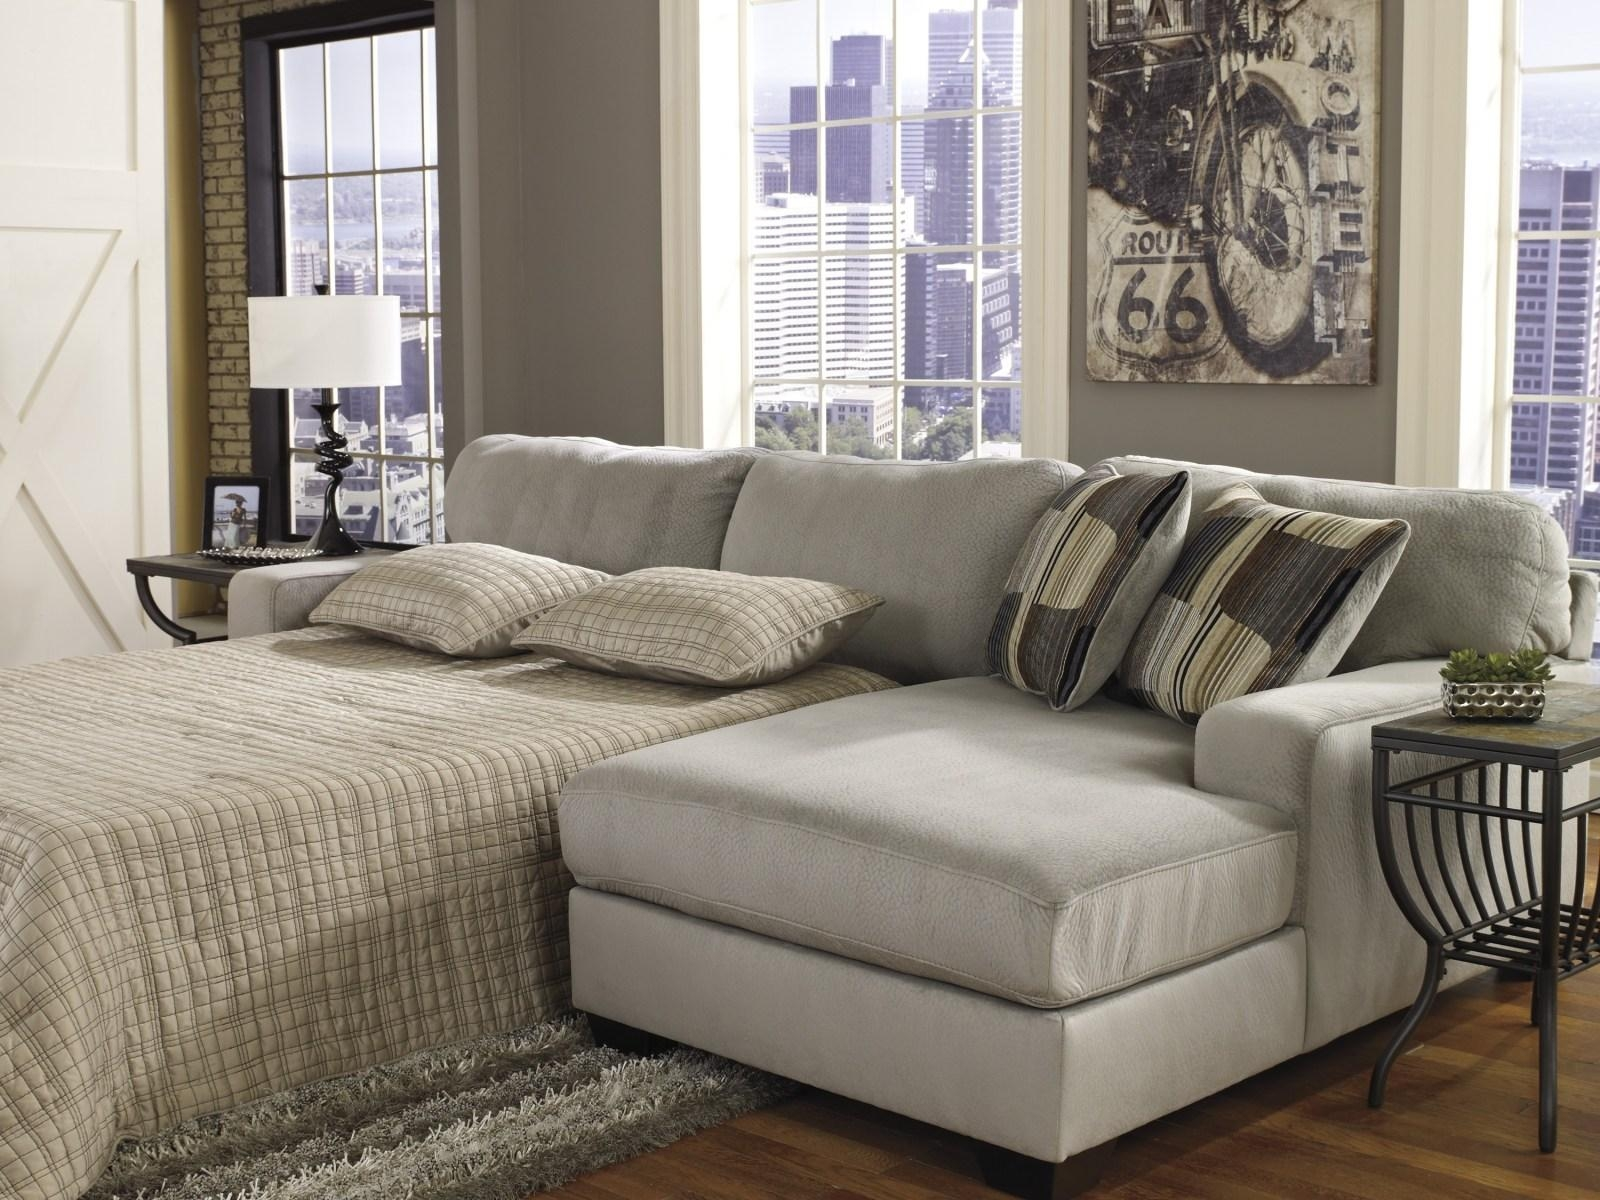 ▻ Sofa : 14 Wonderful Sectional Sofas For Small Rooms Images With Regard To Sectional Ideas For Small Rooms (Image 1 of 20)